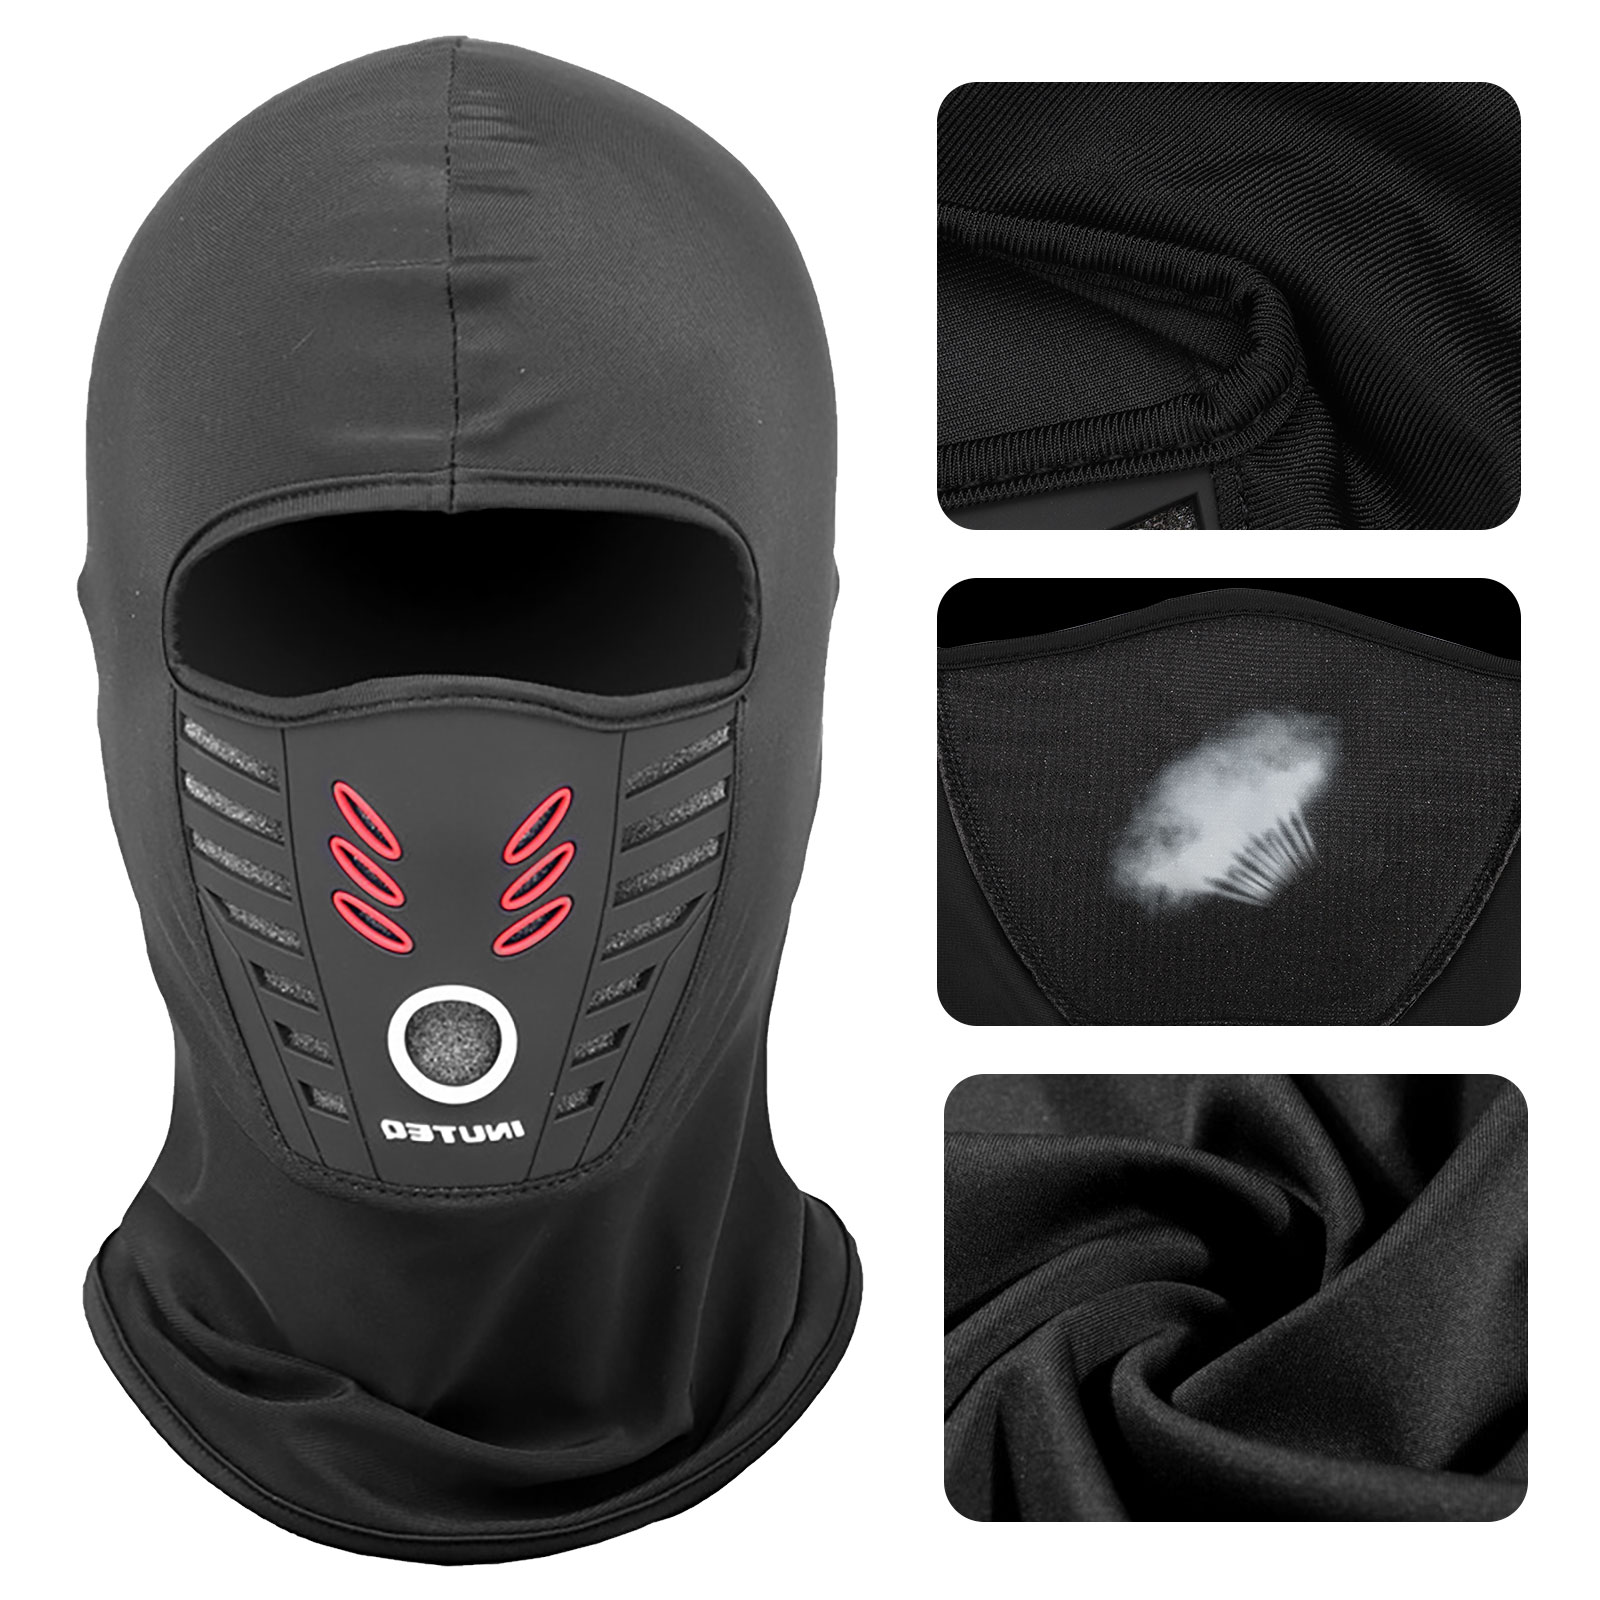 Men Women Winter Mouth Mask Ear Muff Neck Scarf Protective 3 In 1 Warm Supply T